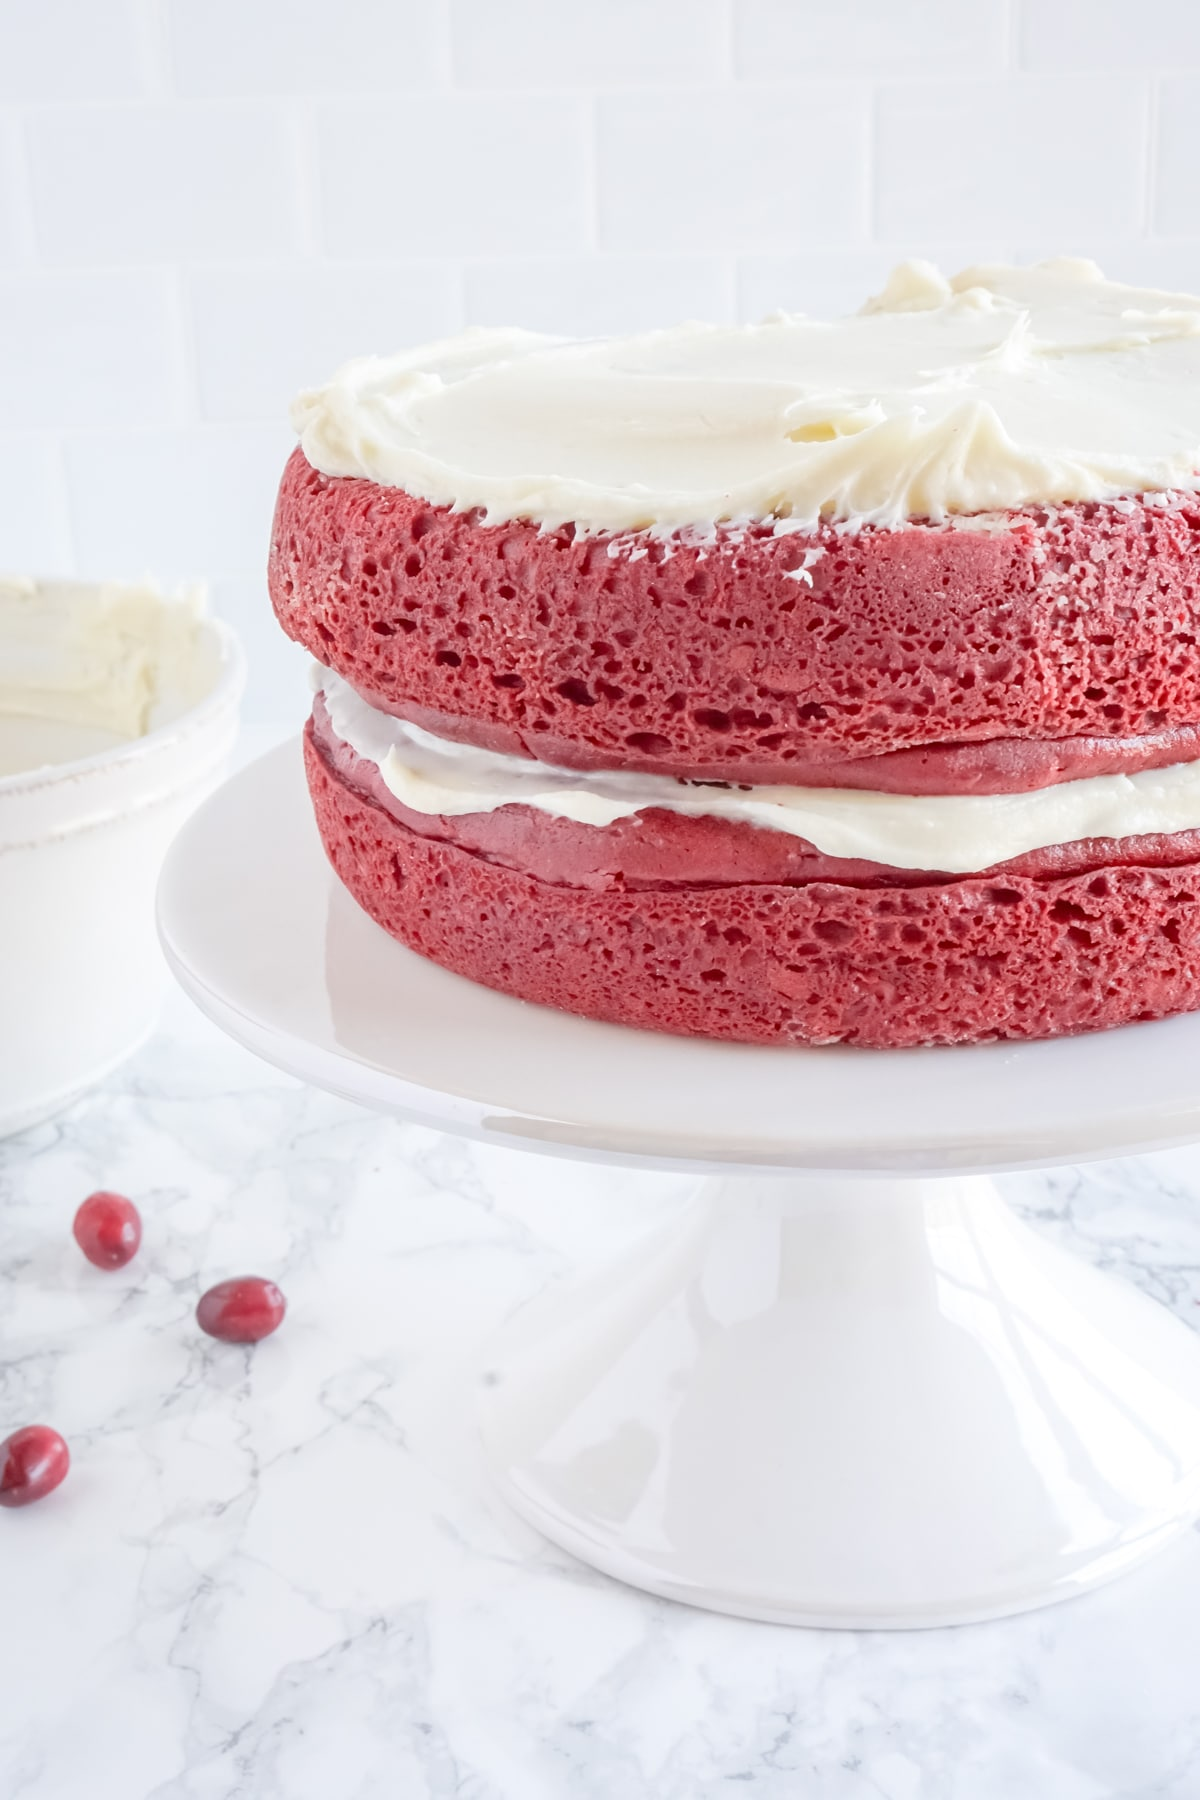 two layers of red velvet cake with cream cheese frosting